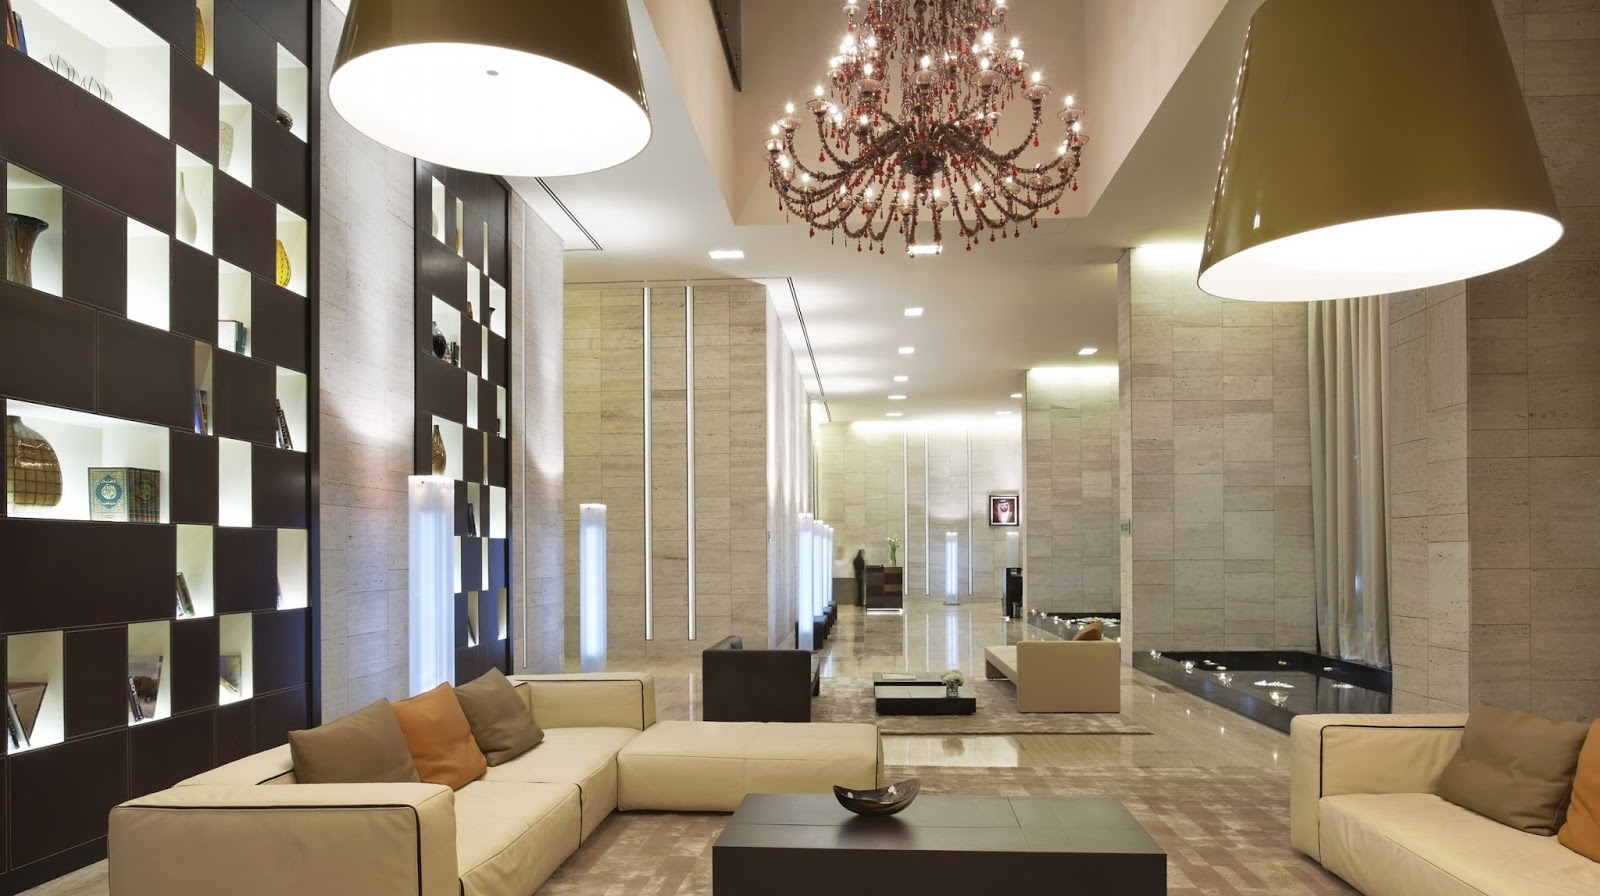 Best interior design companies and interior designers in dubai for Contemporary interior designers